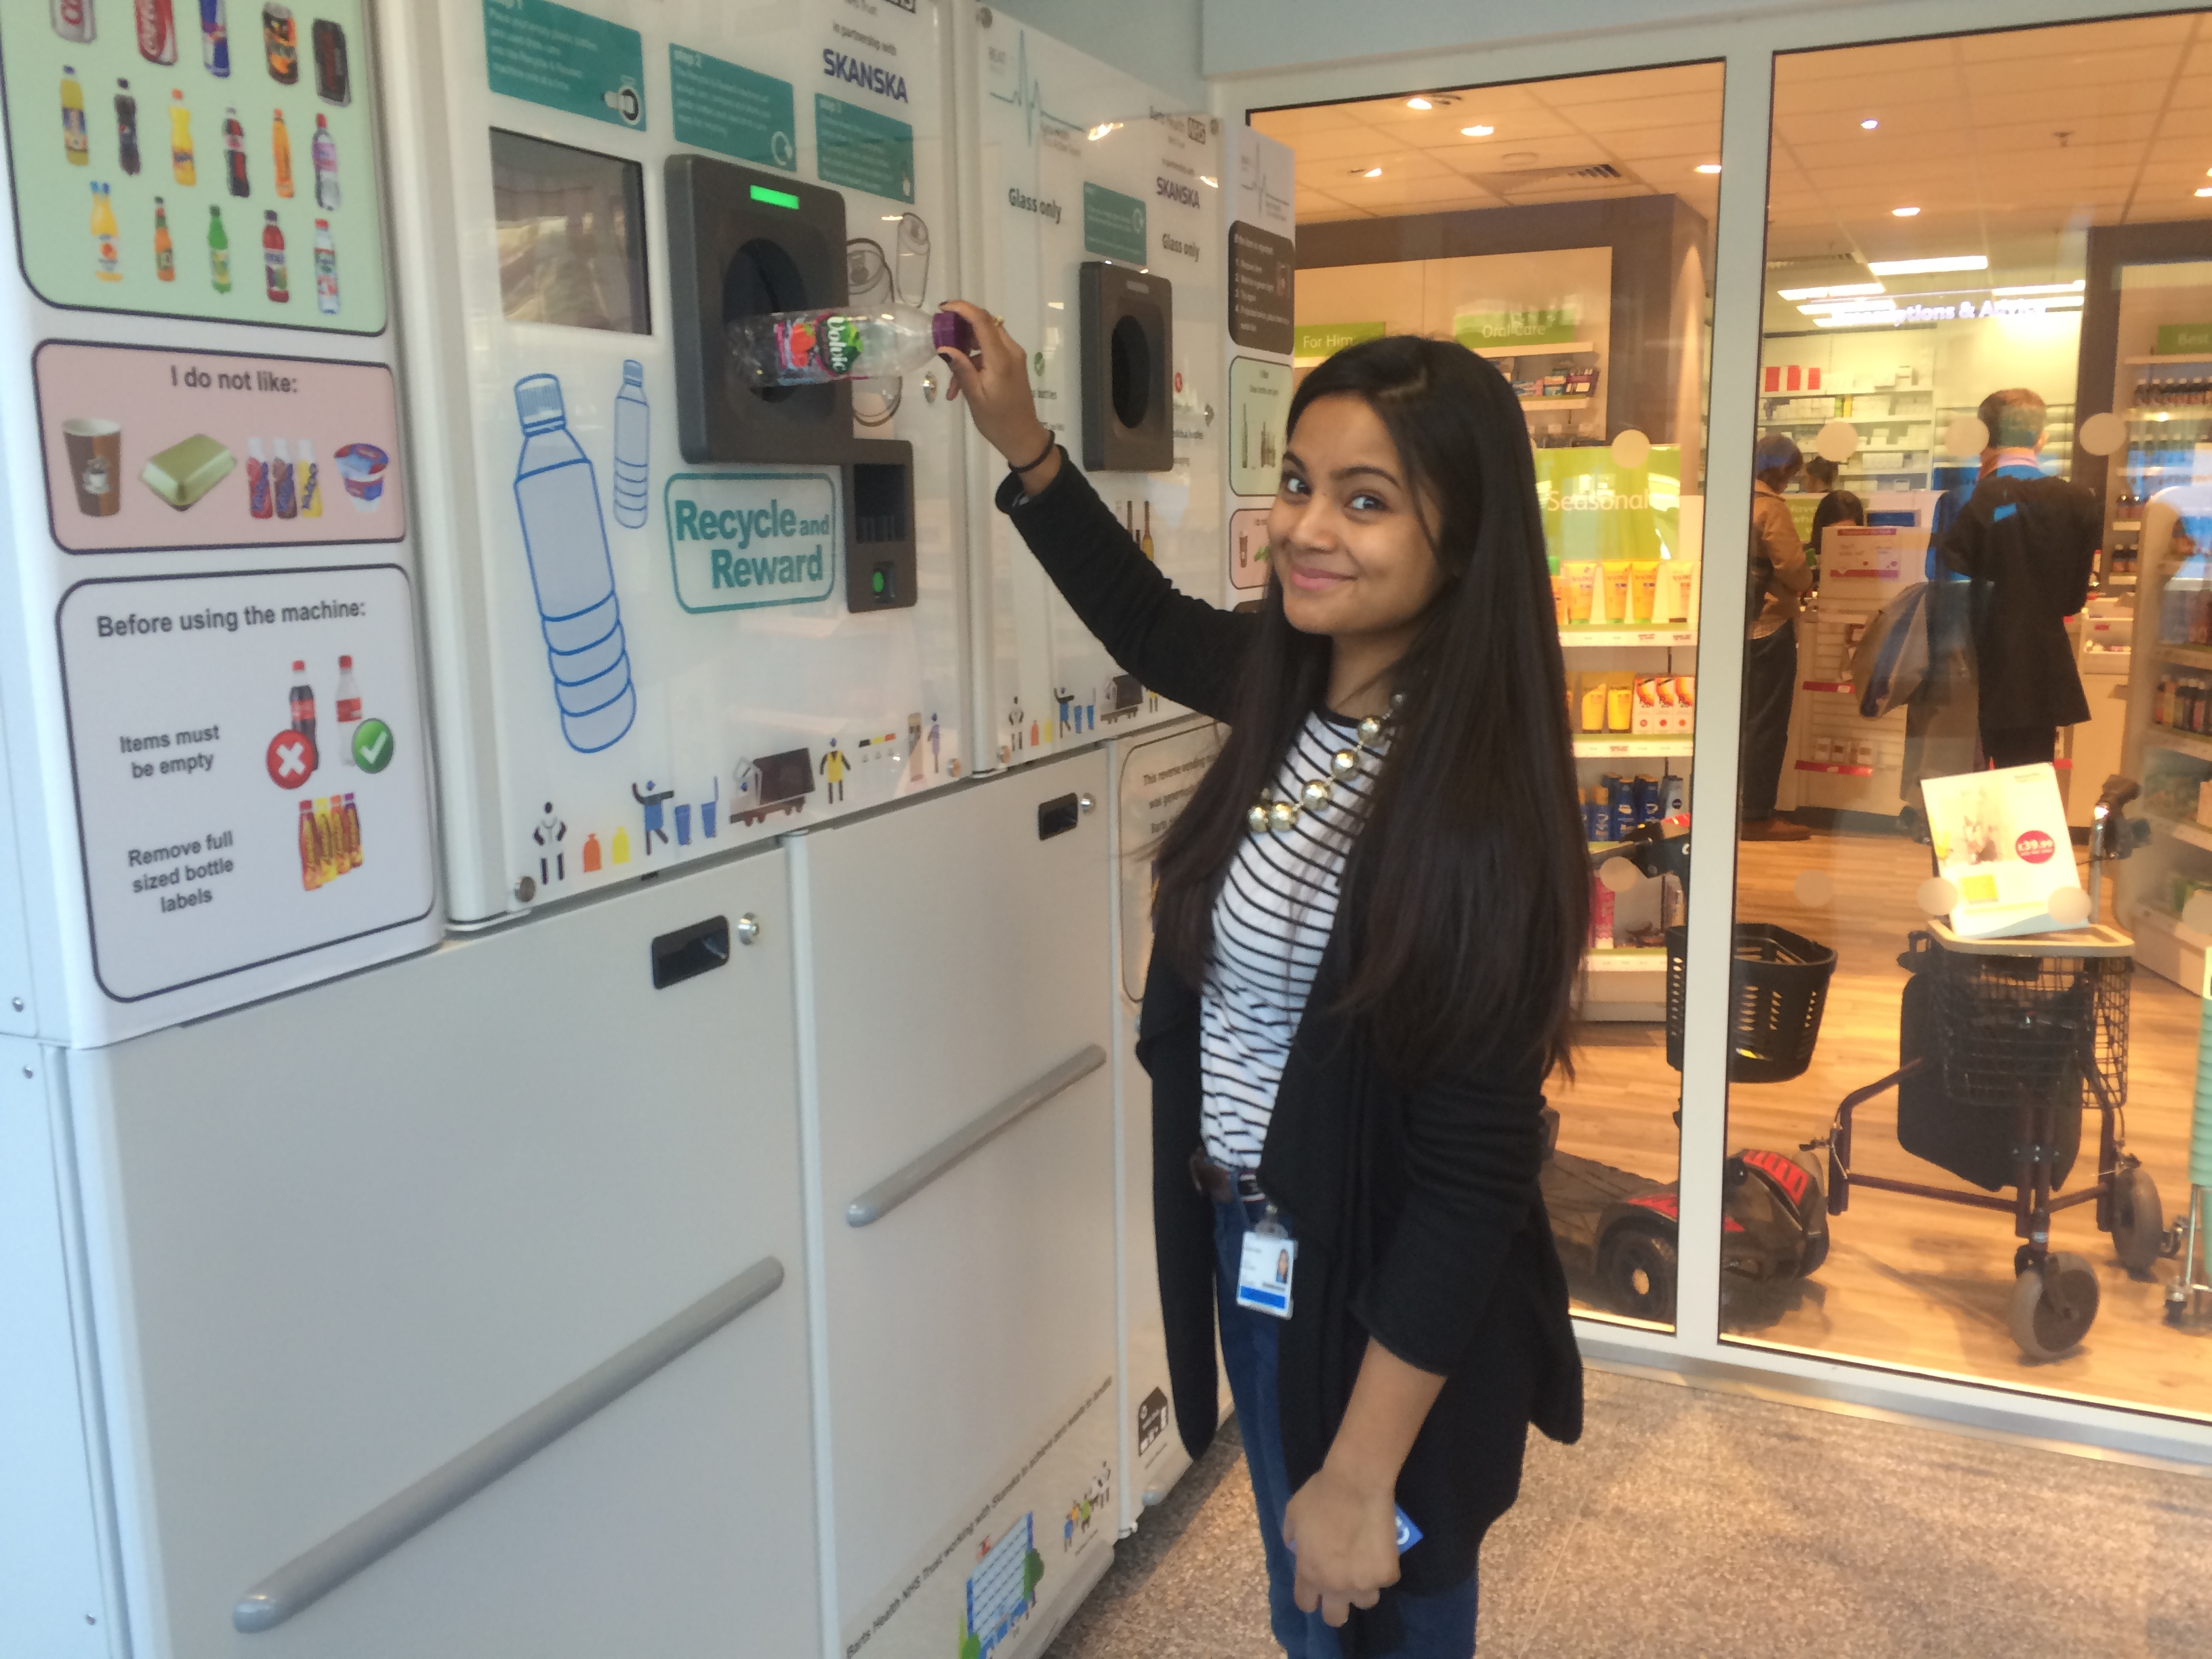 Reverse Vending Machines in Hospital